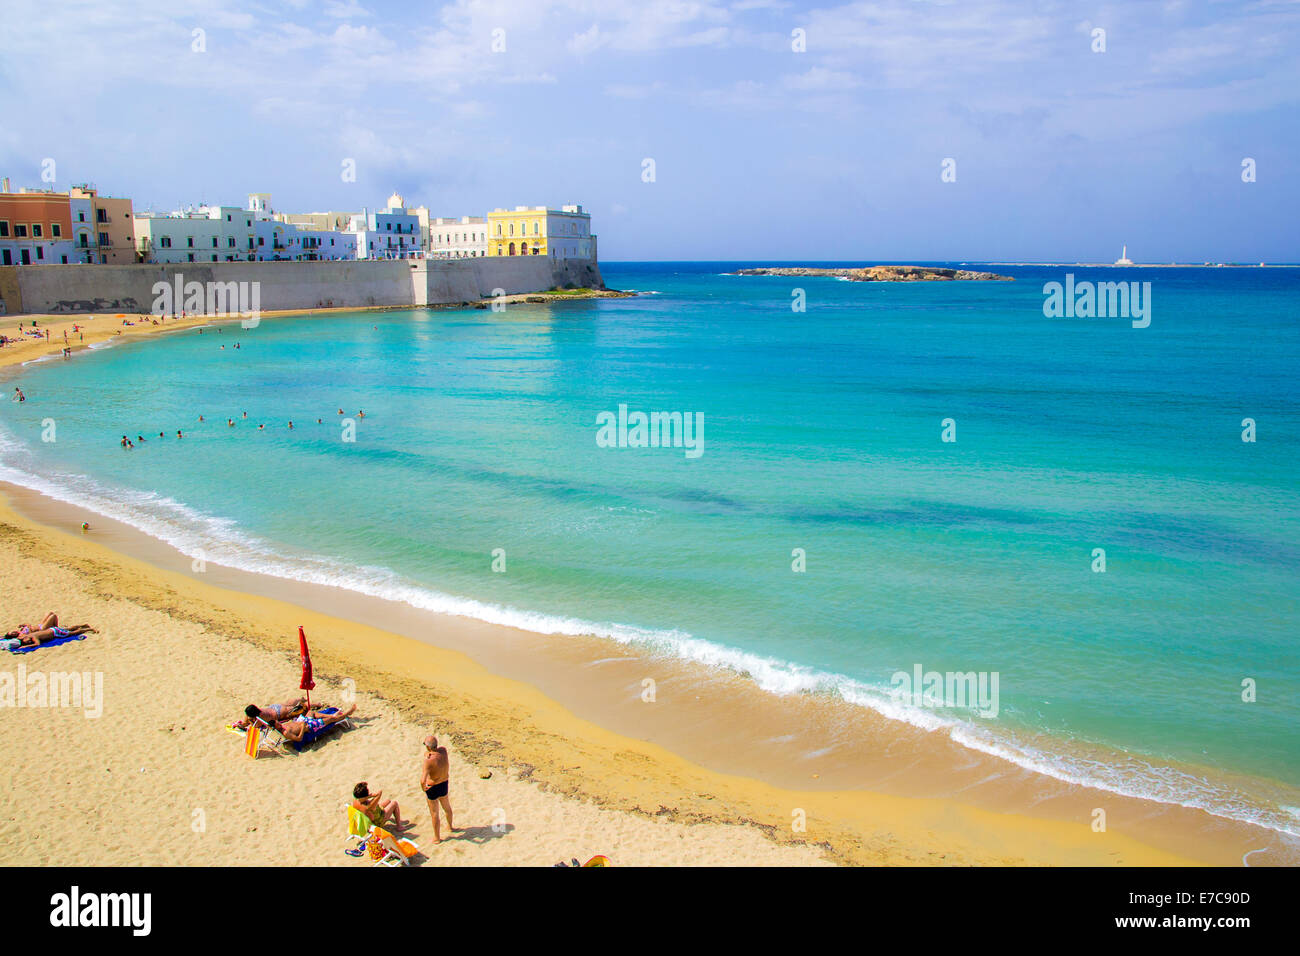 Gallipoli beach - Stock Image